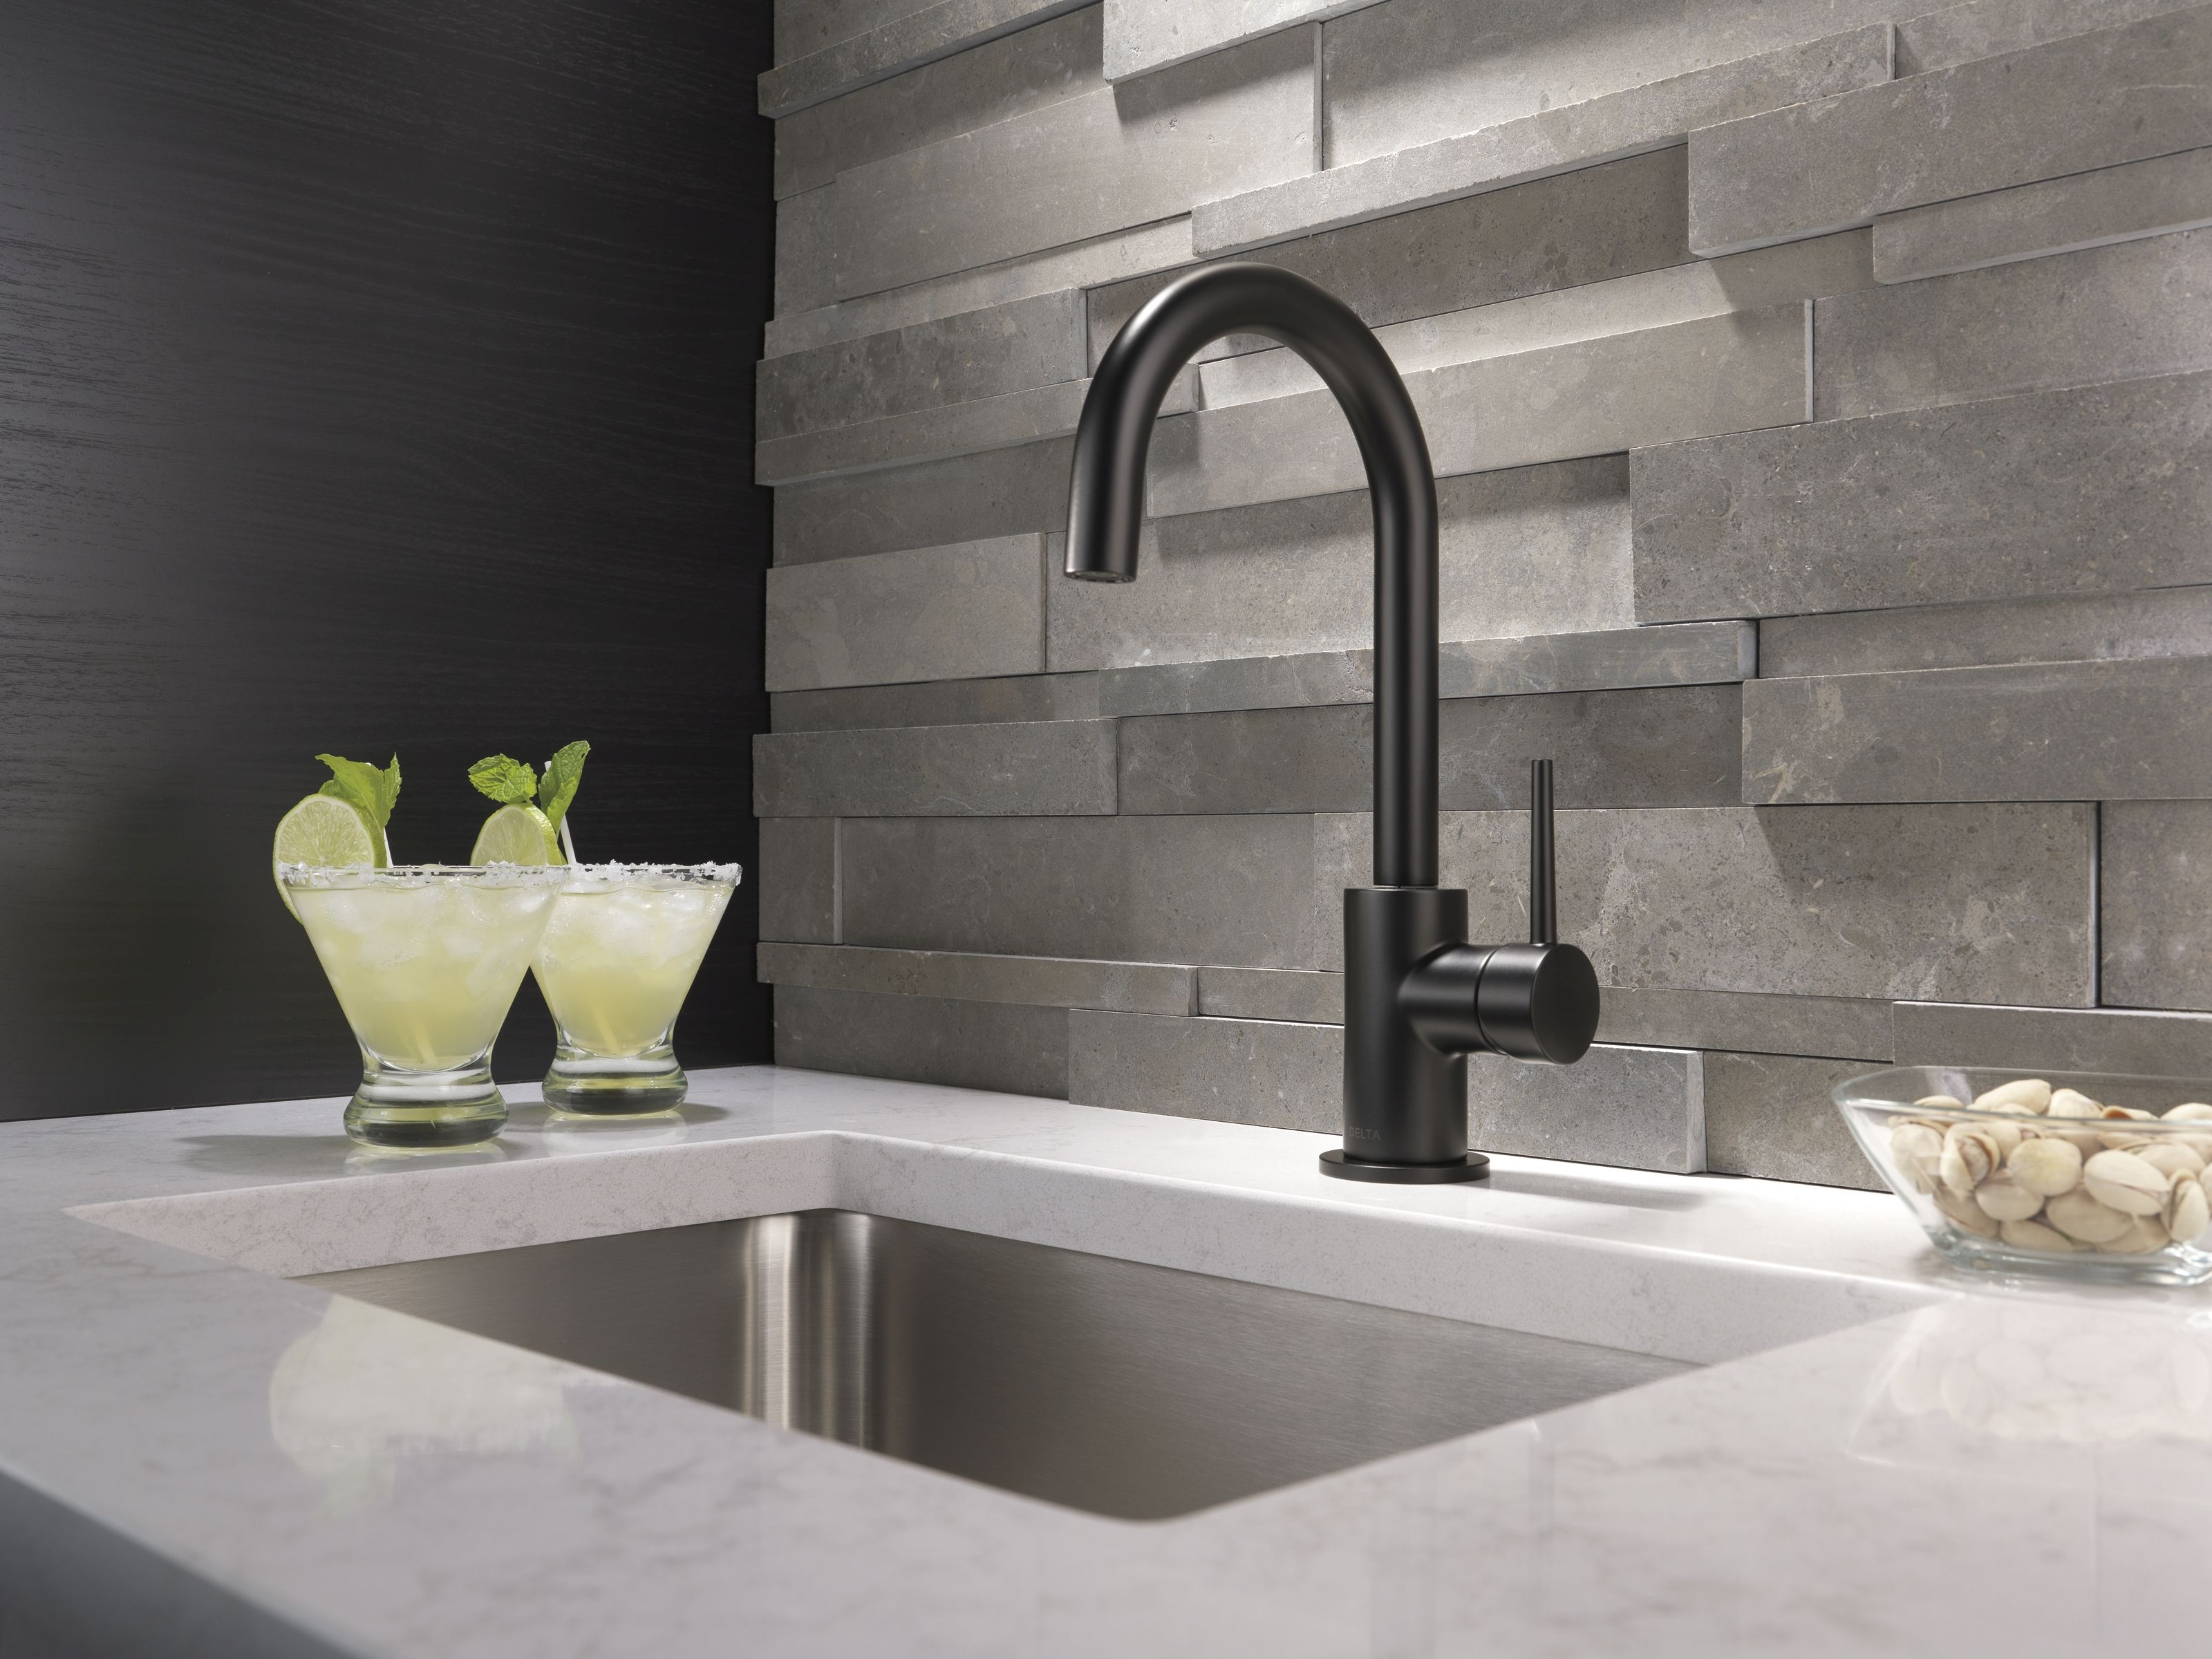 pictures-of-kitchens-with-black-faucets-gang-hardcore